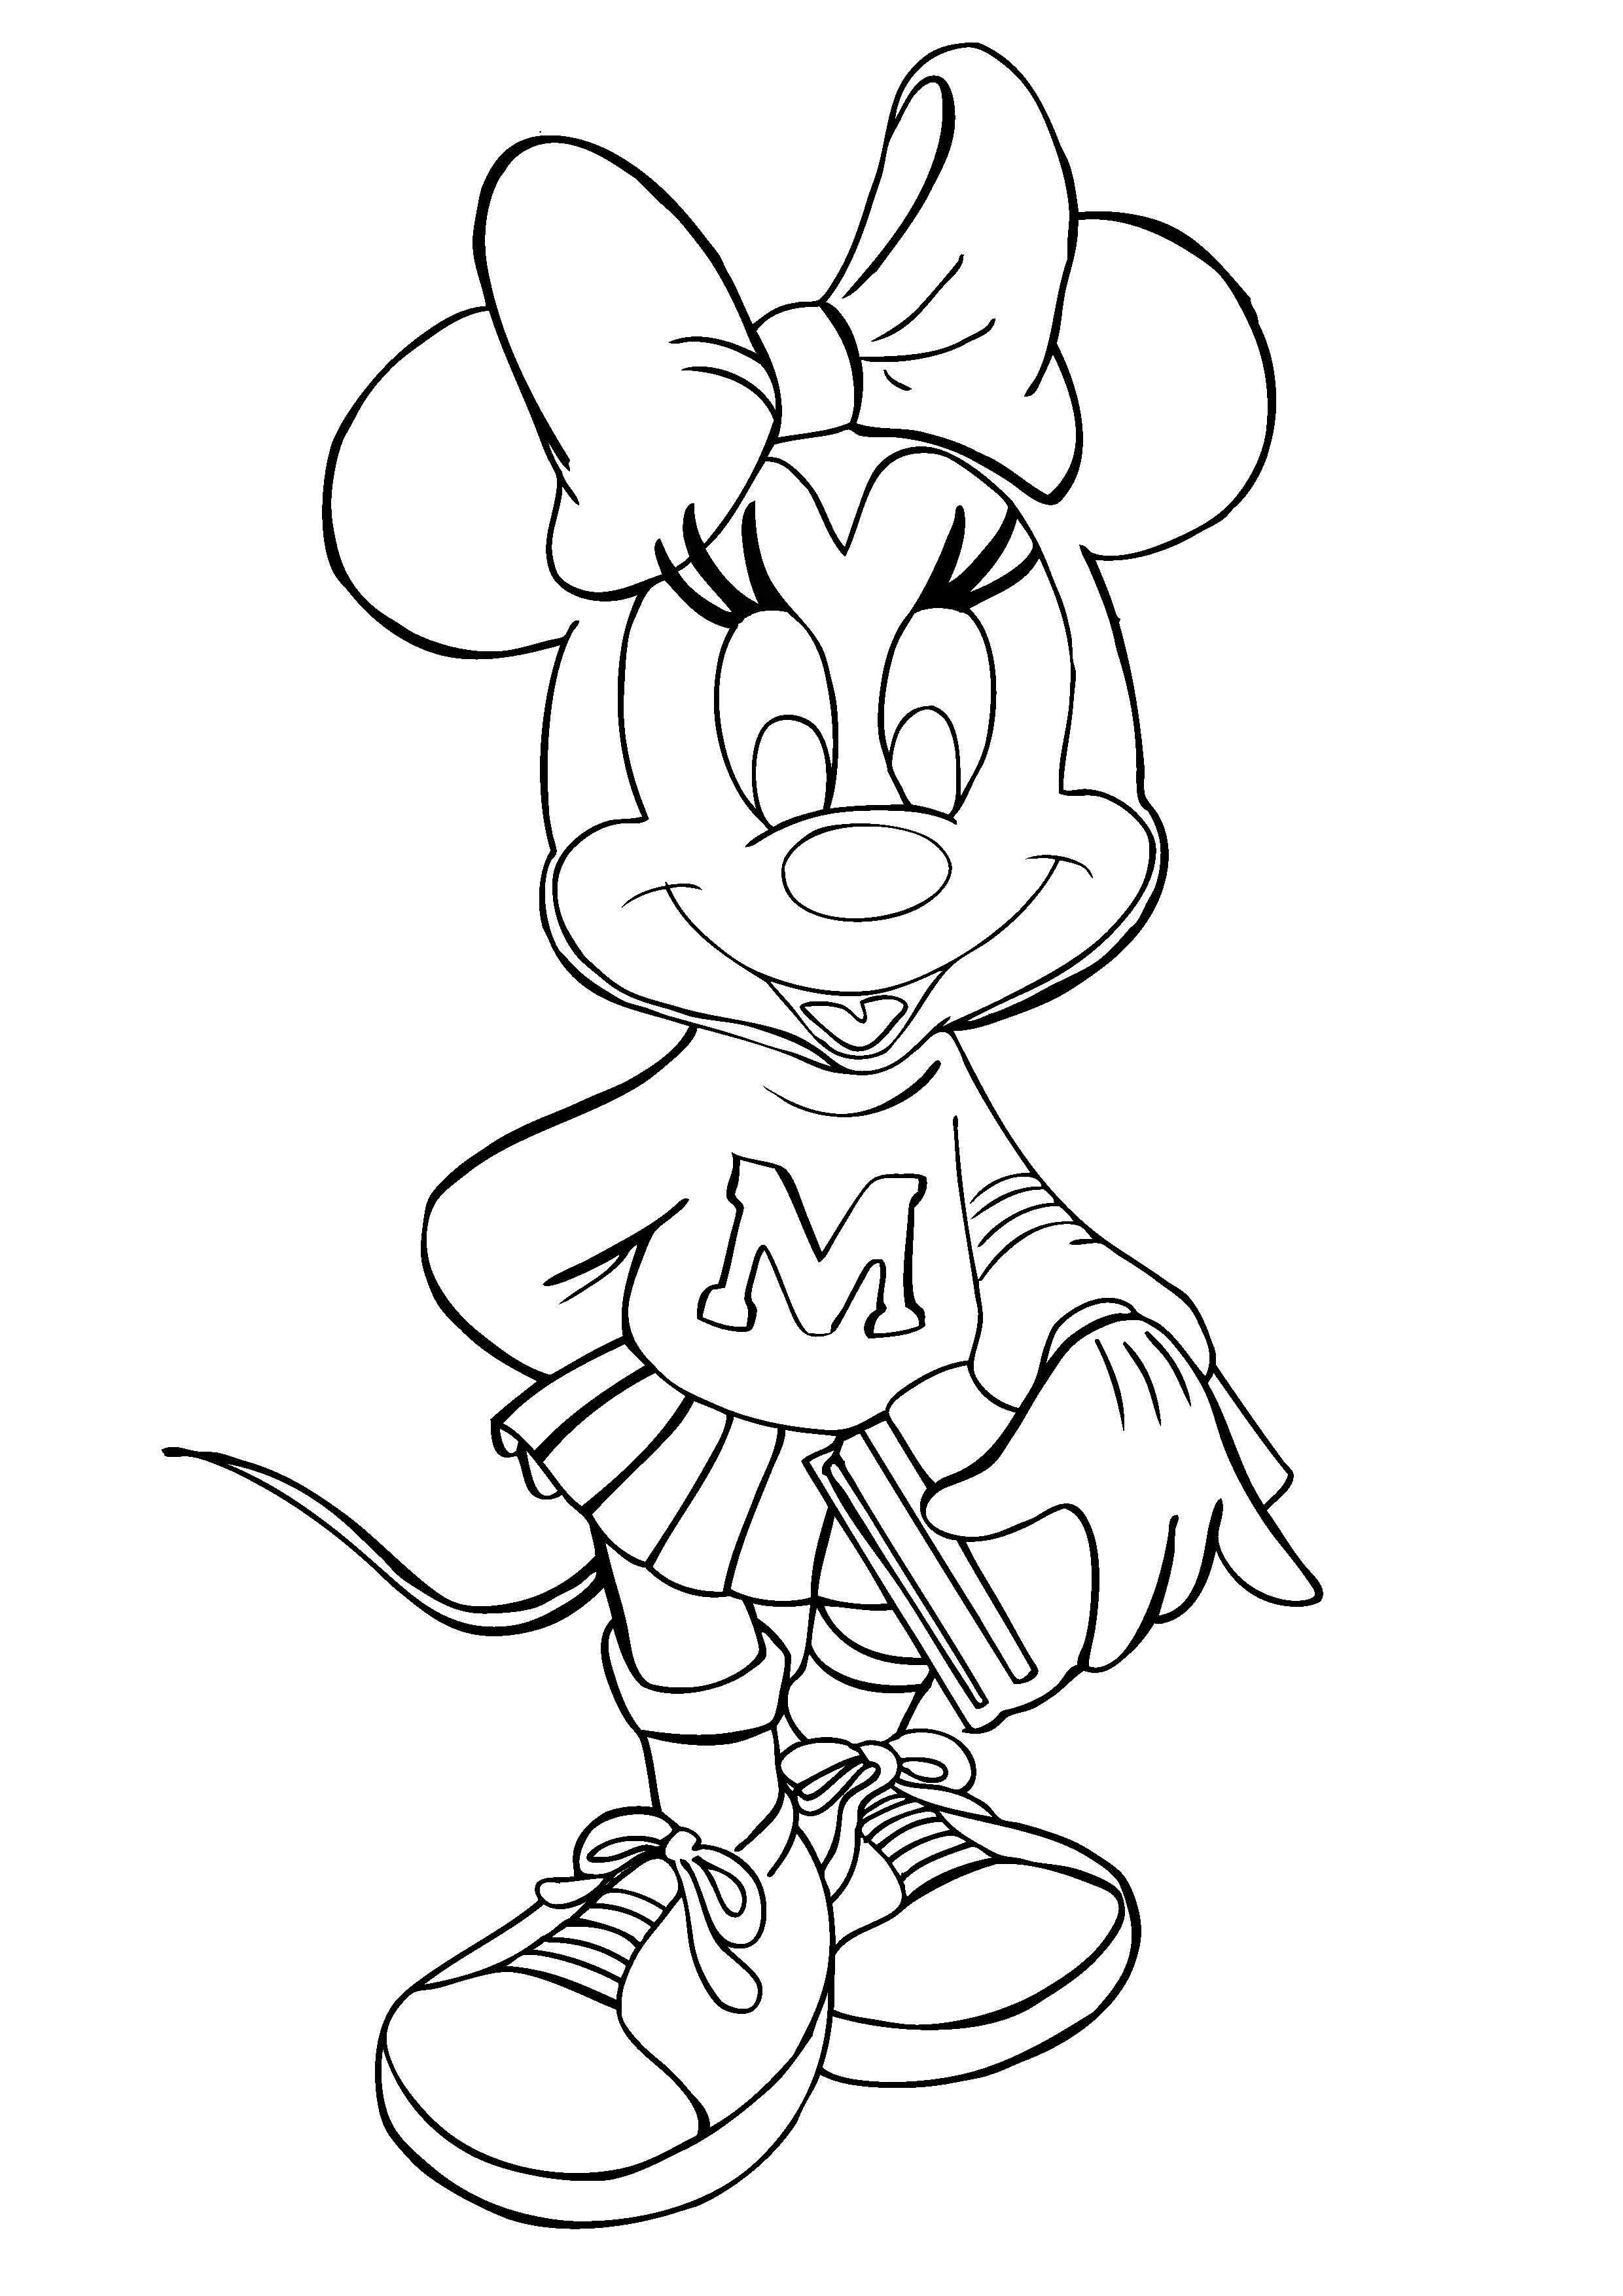 minnie mouse printable coloring pages - minnie mouse coloring pages